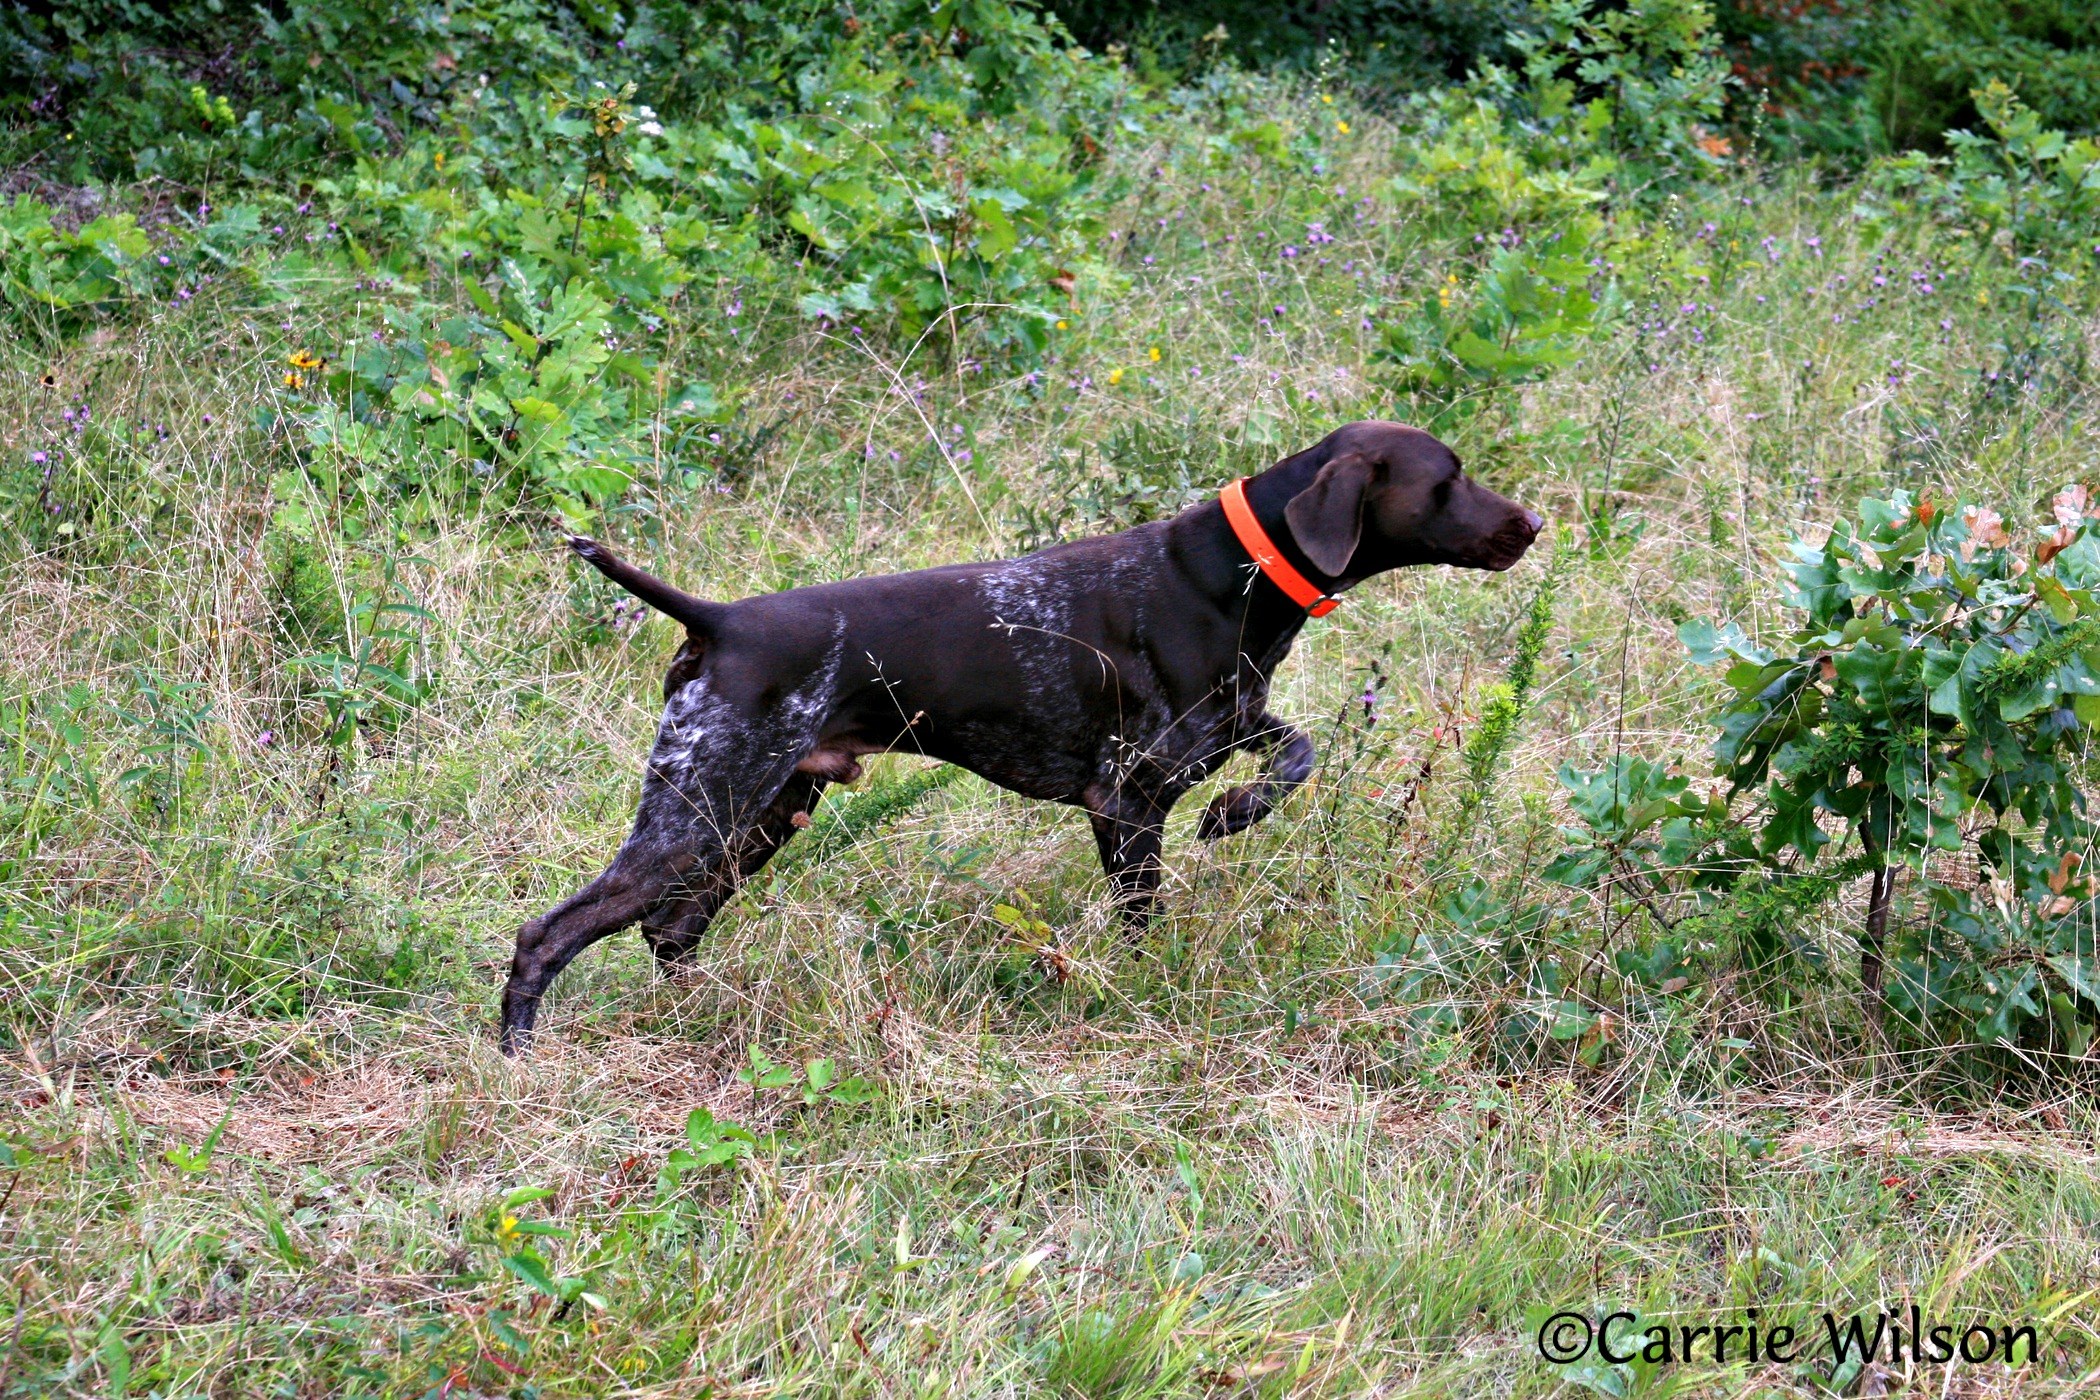 Is it legal to use GPS tracking devices on dogs while